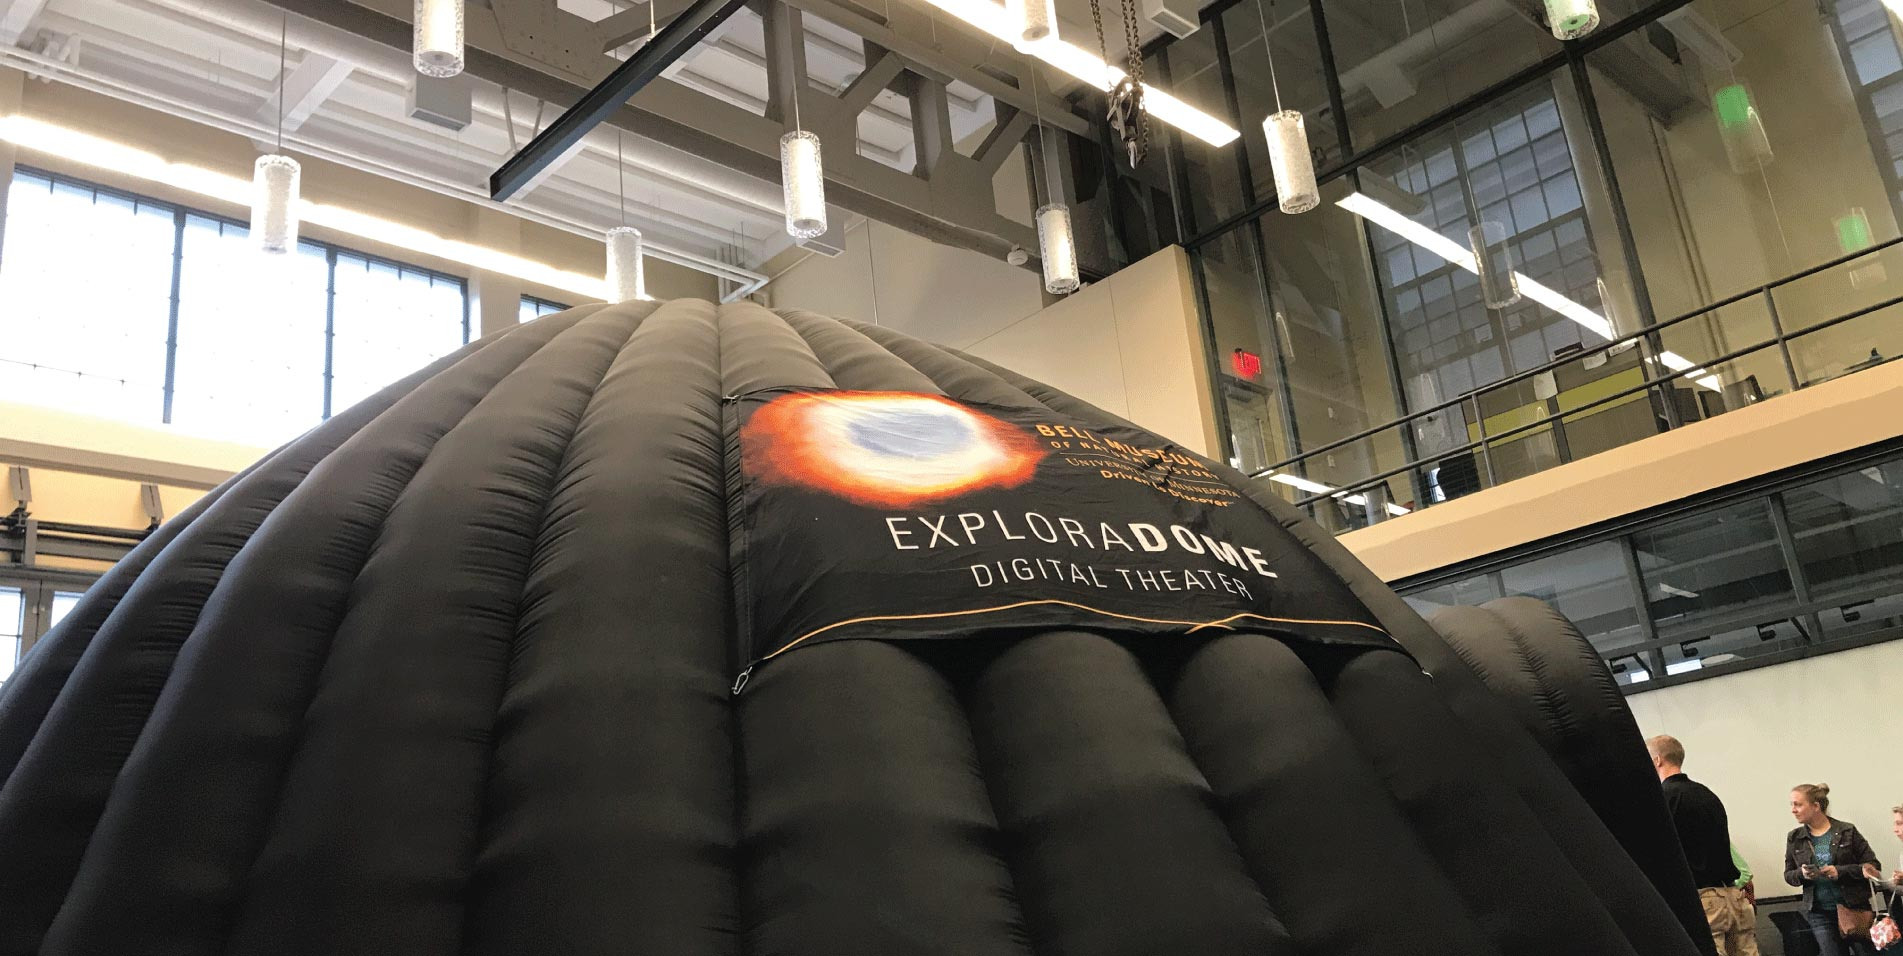 ExploraDome theater at a community event